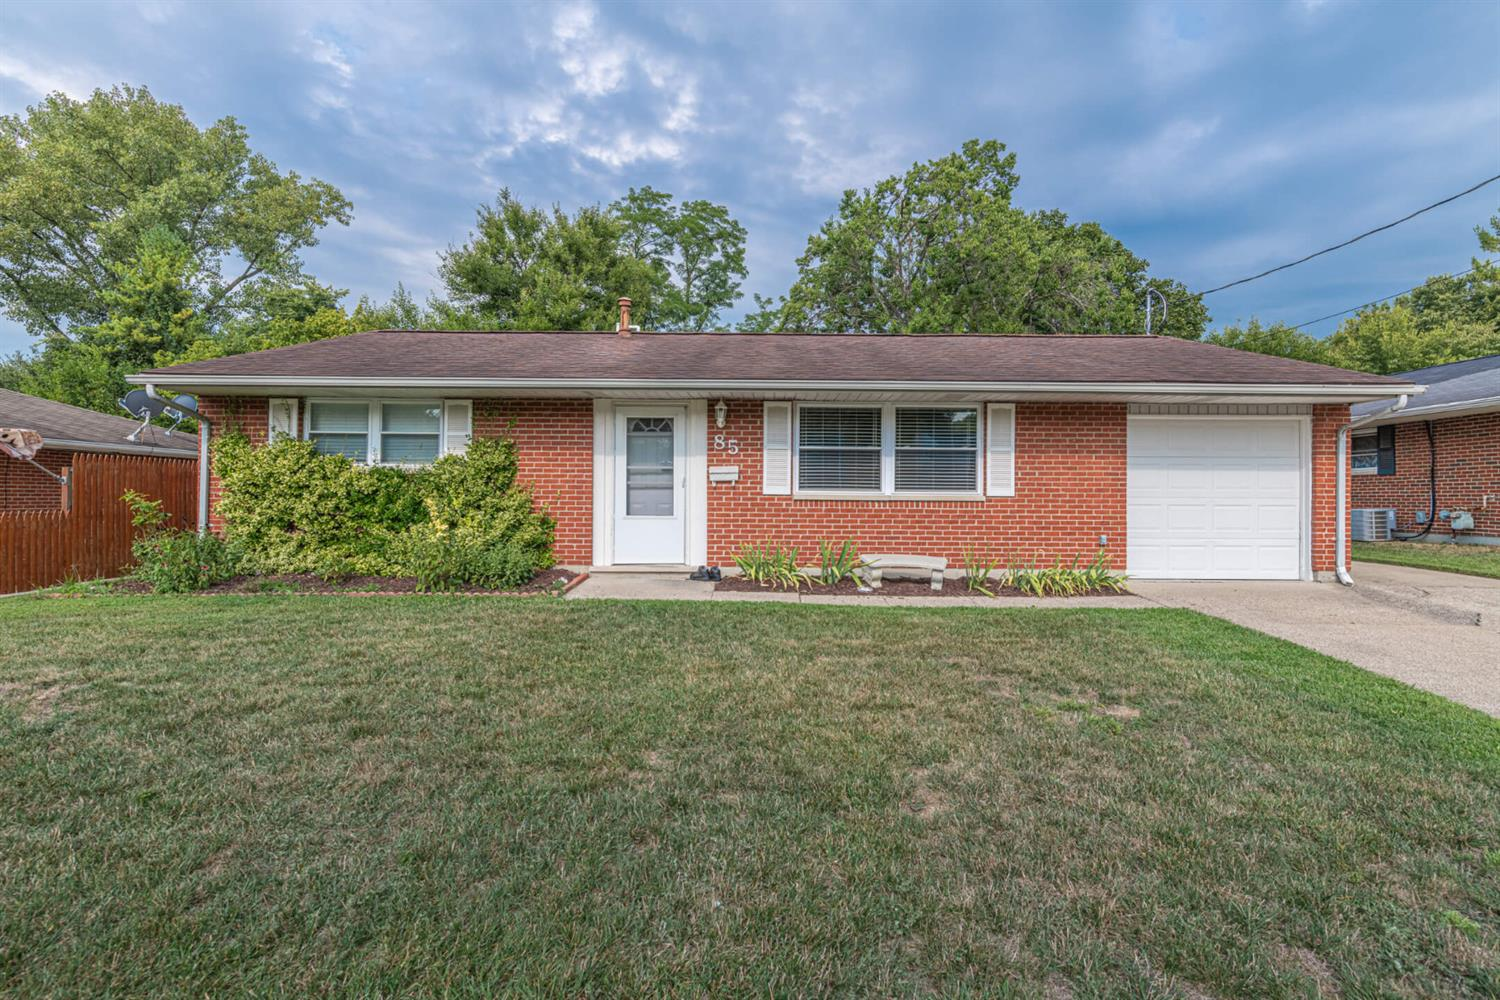 Property for sale at 85 Carey Drive, Springboro,  Ohio 45066